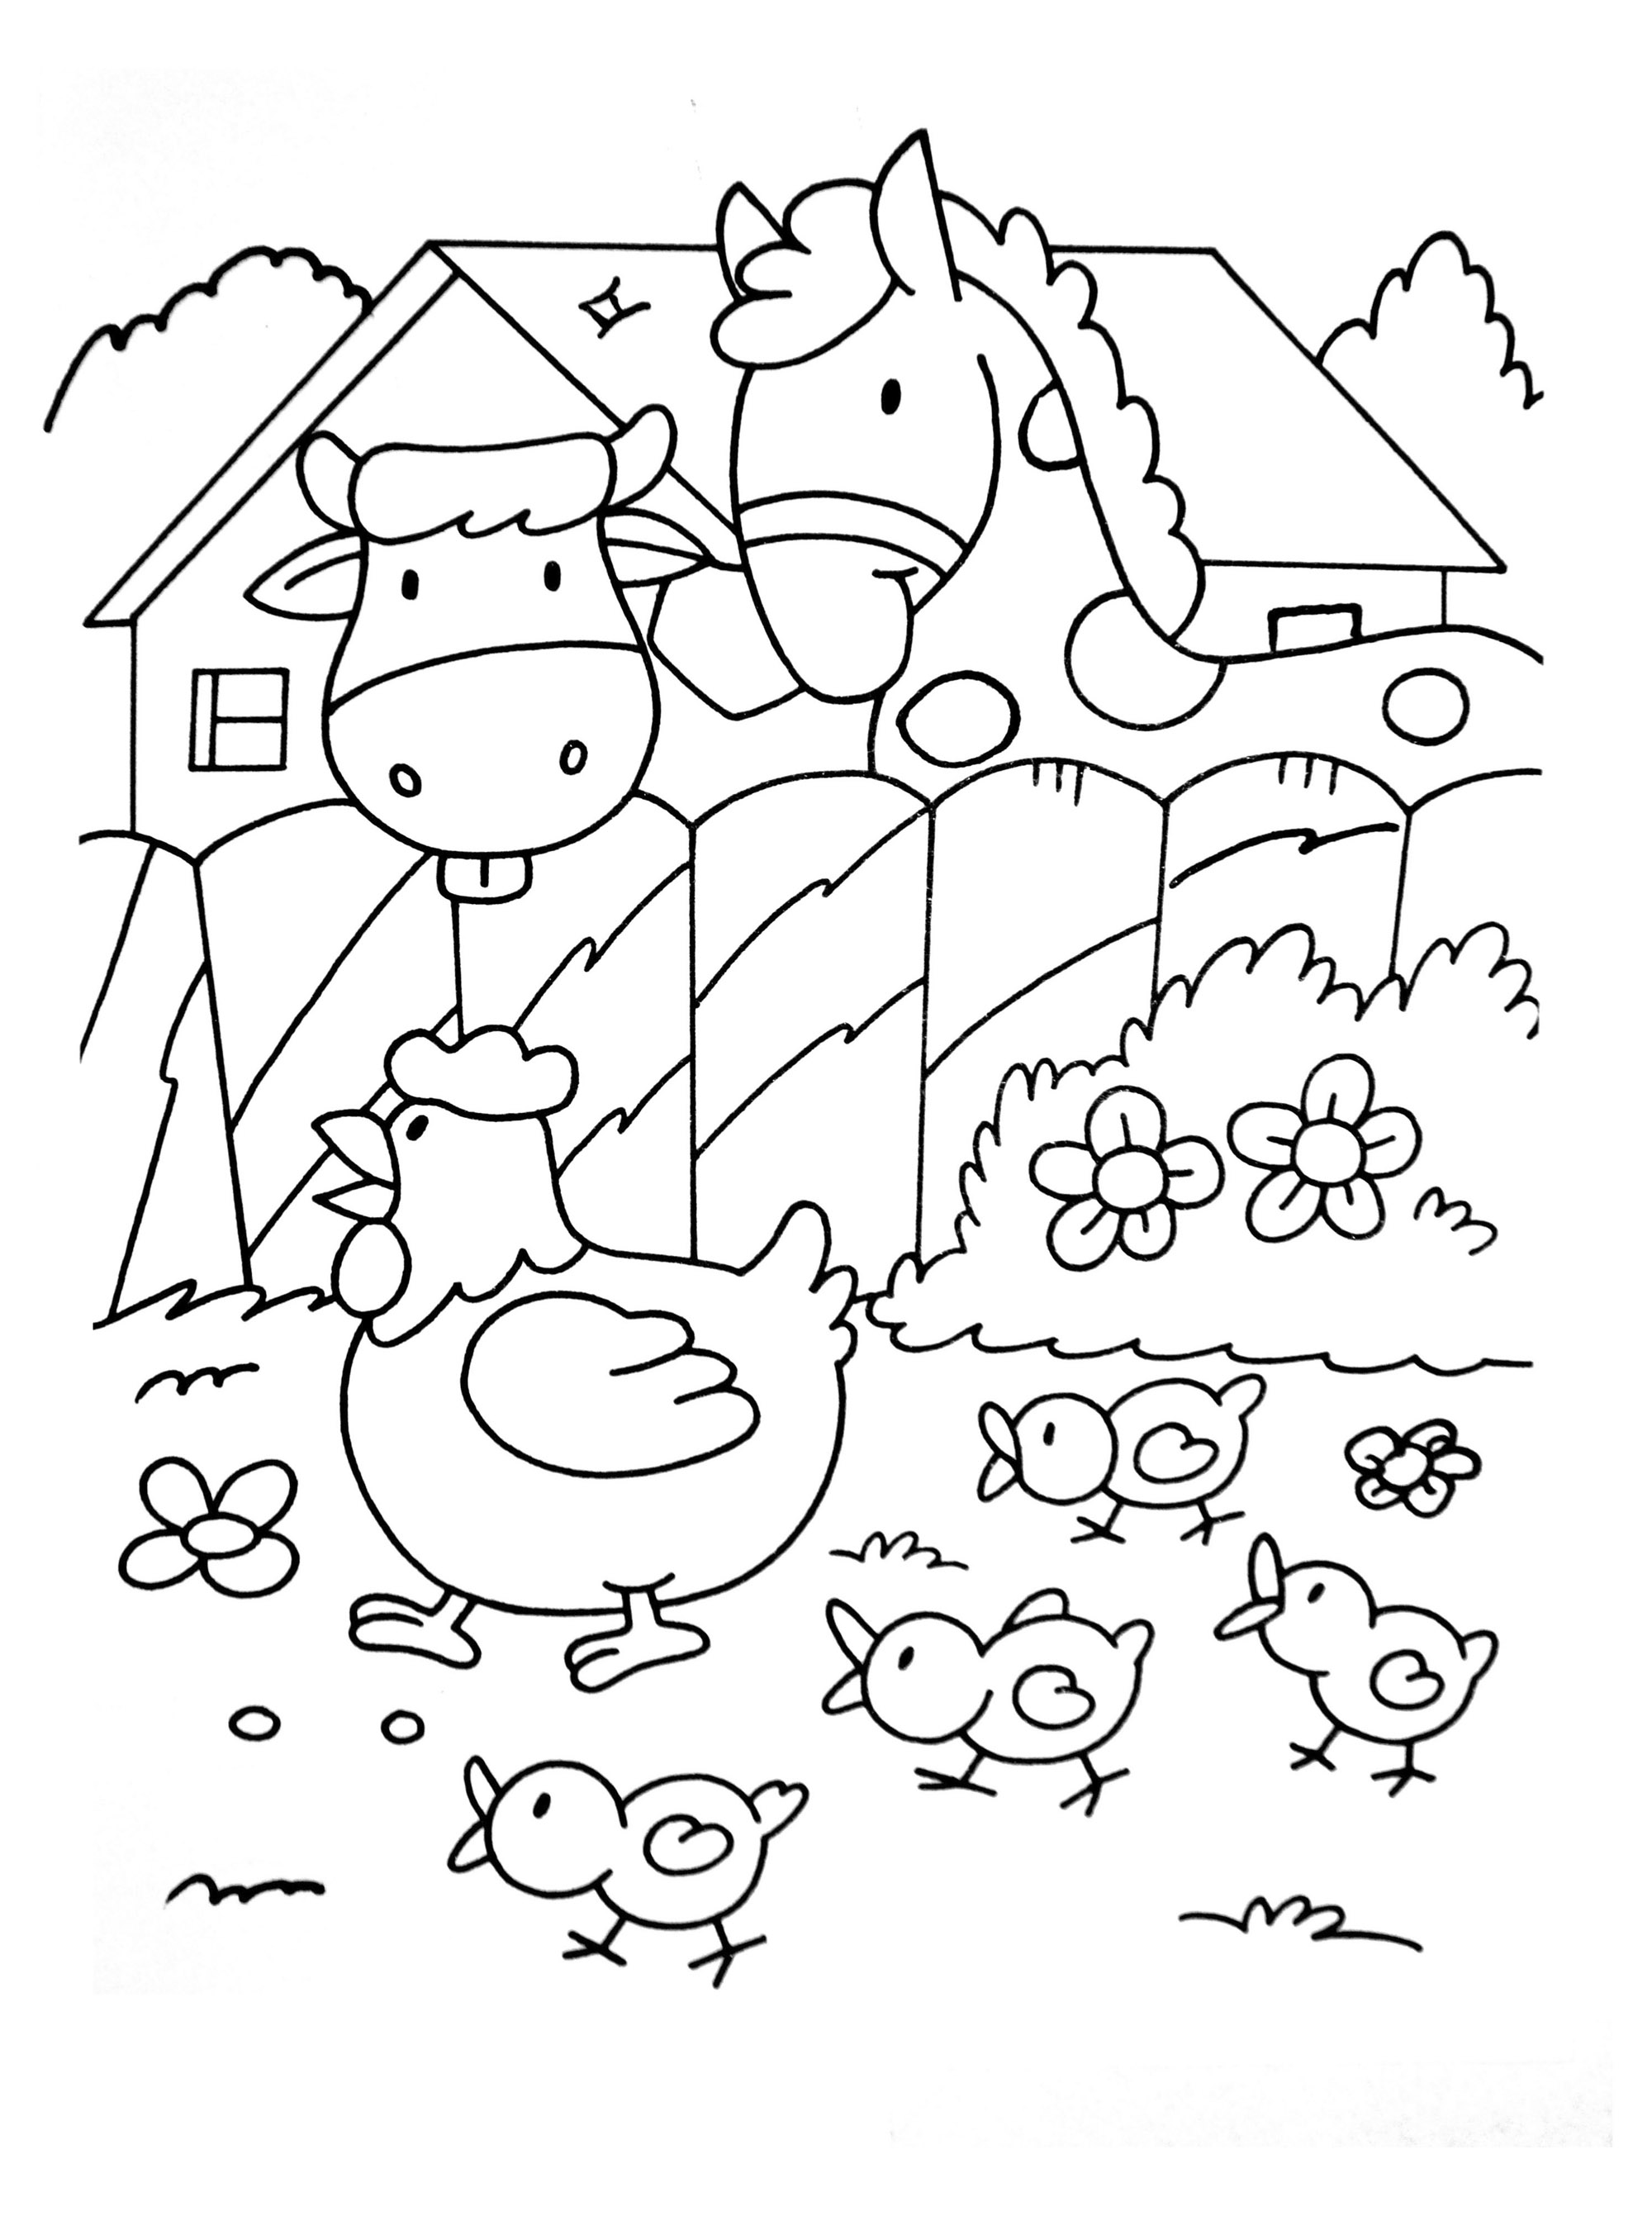 In the farm - Animal Coloring pages for kids to print & color